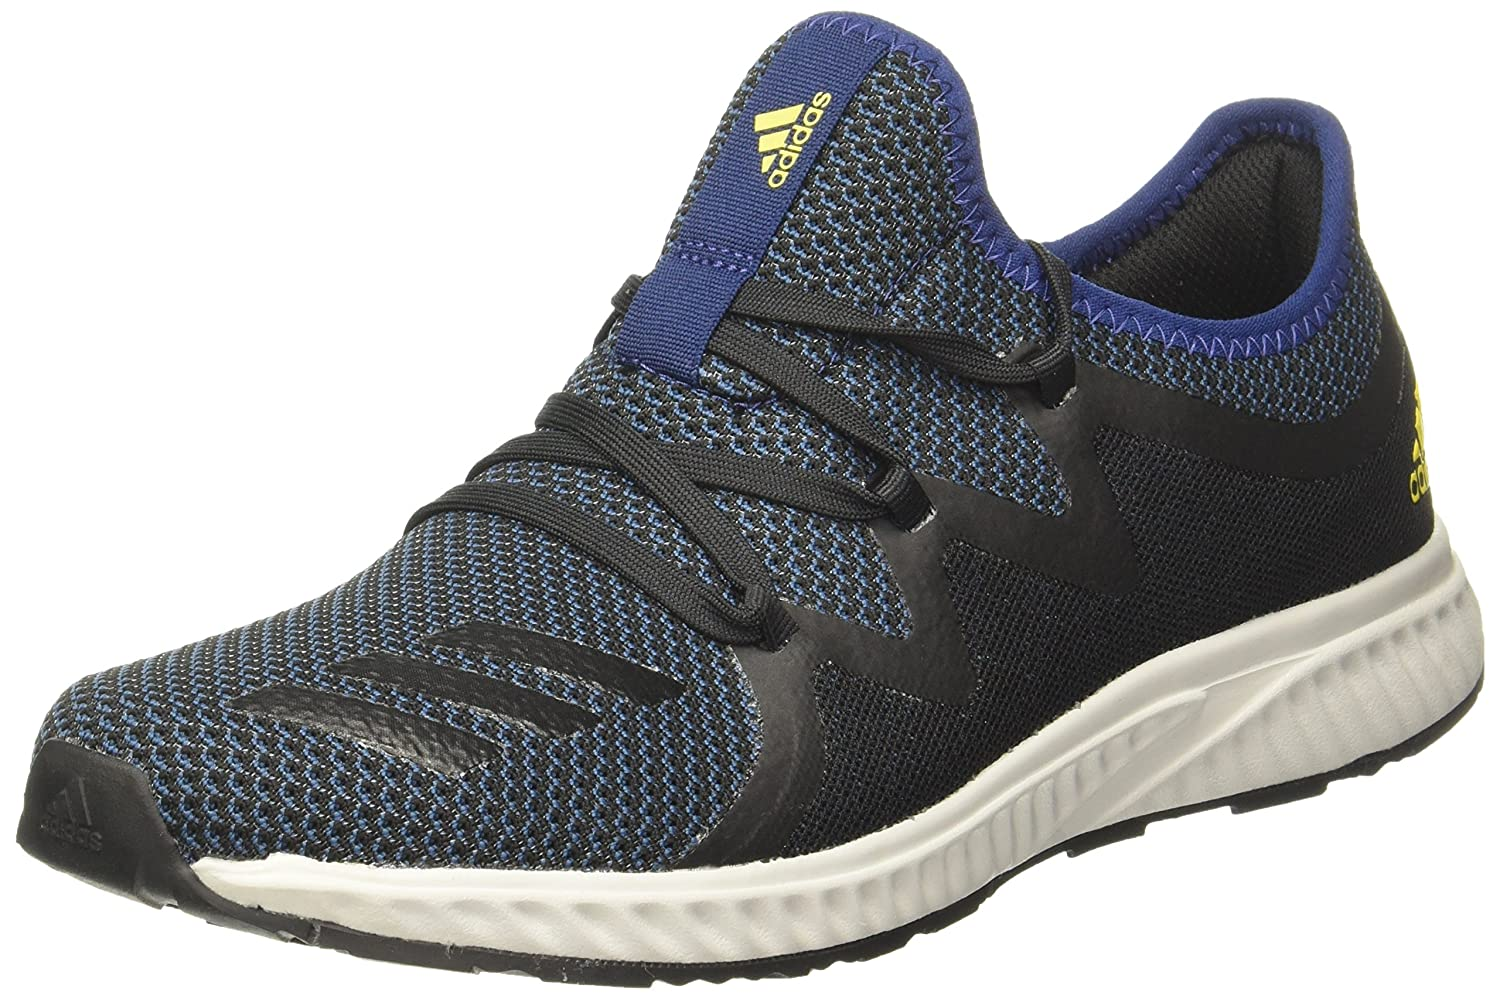 new styles cde63 d8446 Adidas Men's Manazero M Running Shoes